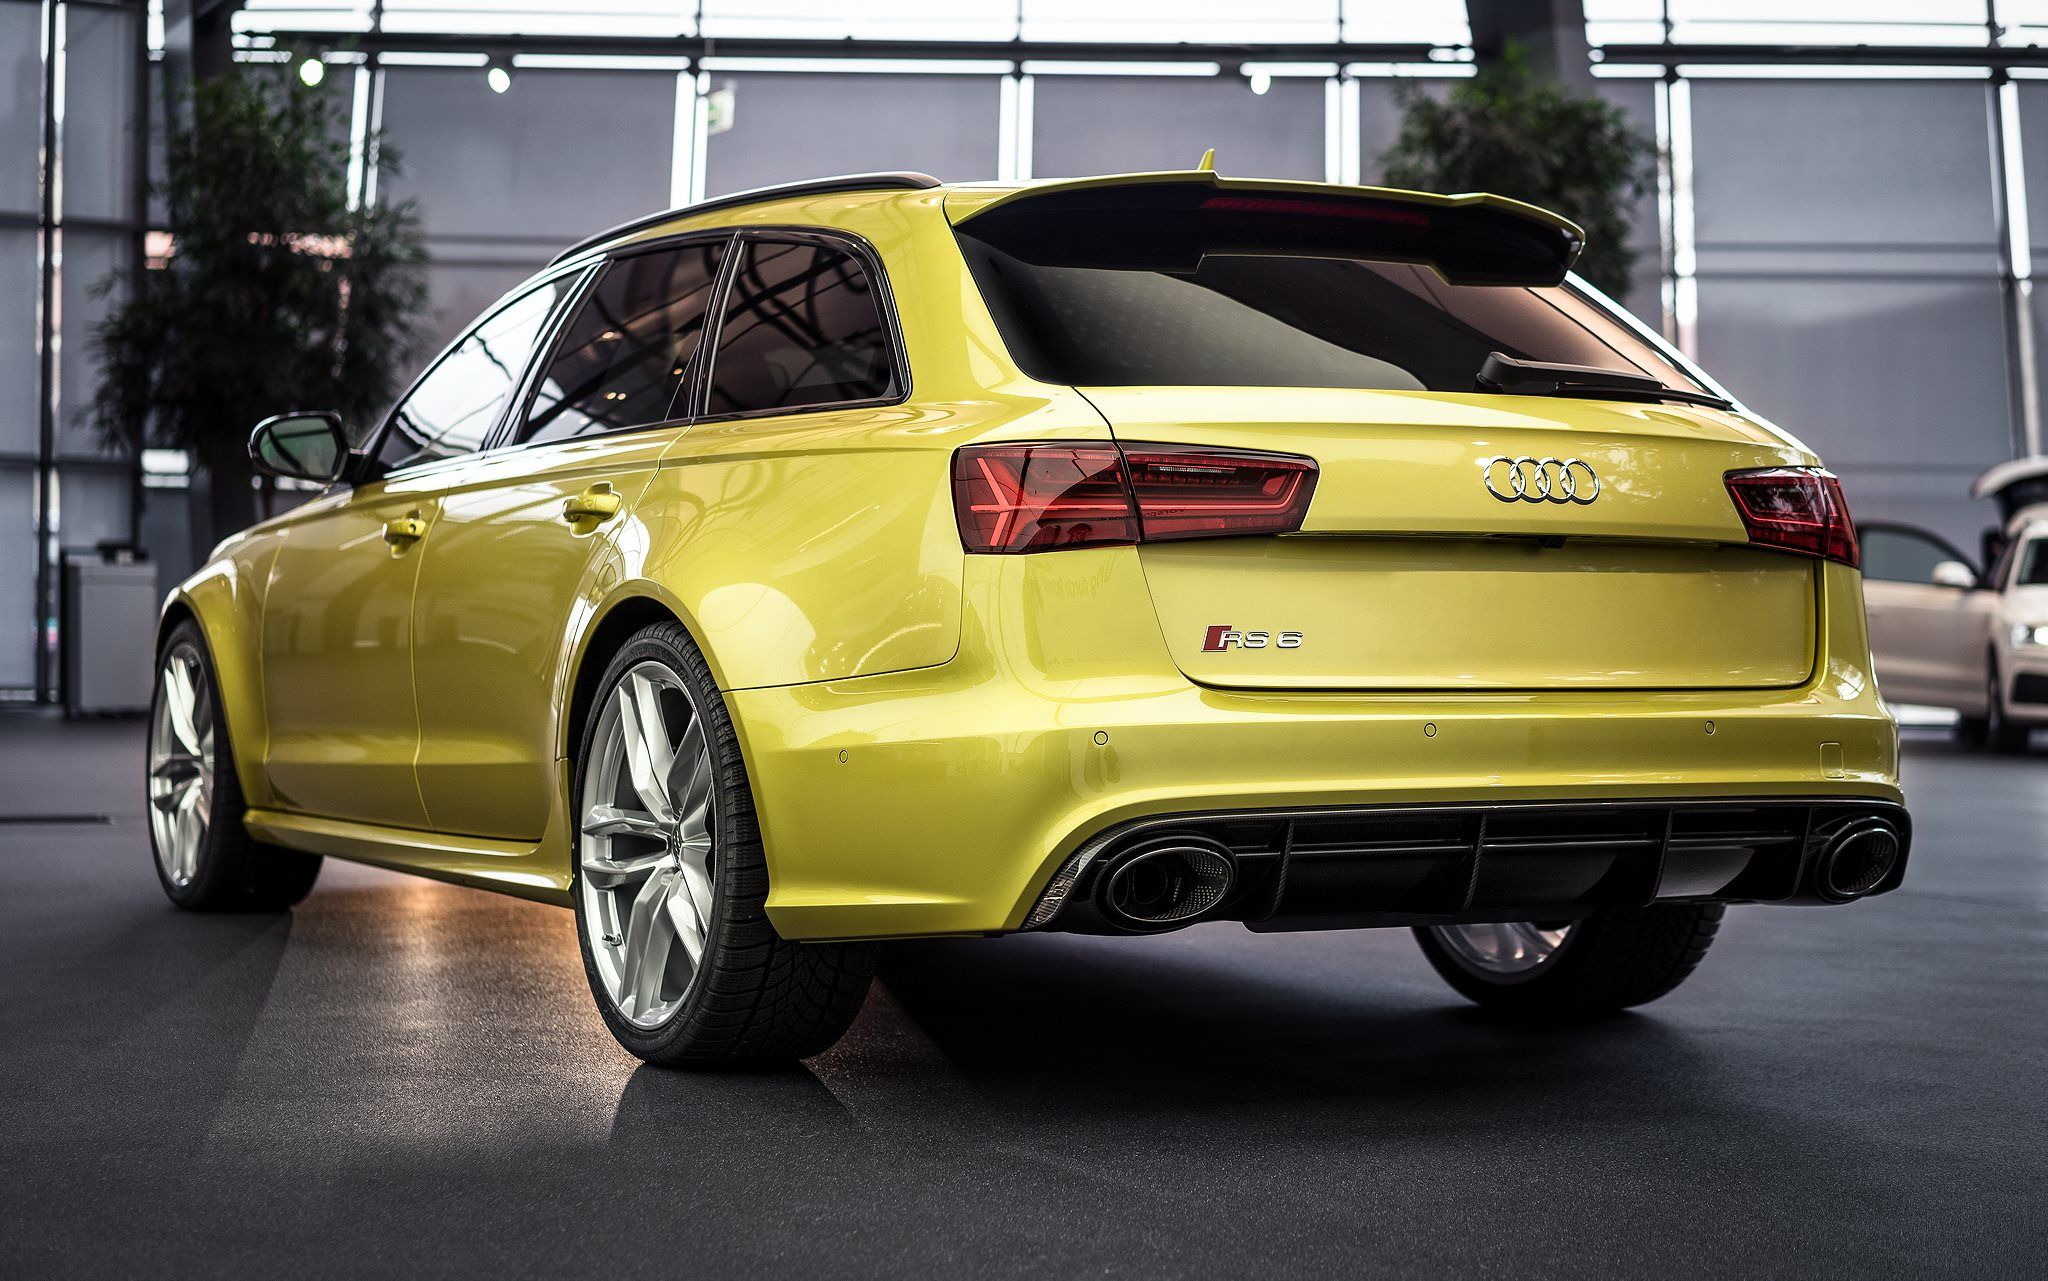 audi rs6 in austin yellow is not the bmw m4 you are looking for audi rs6 bmw m4 audi audi rs6 bmw m4